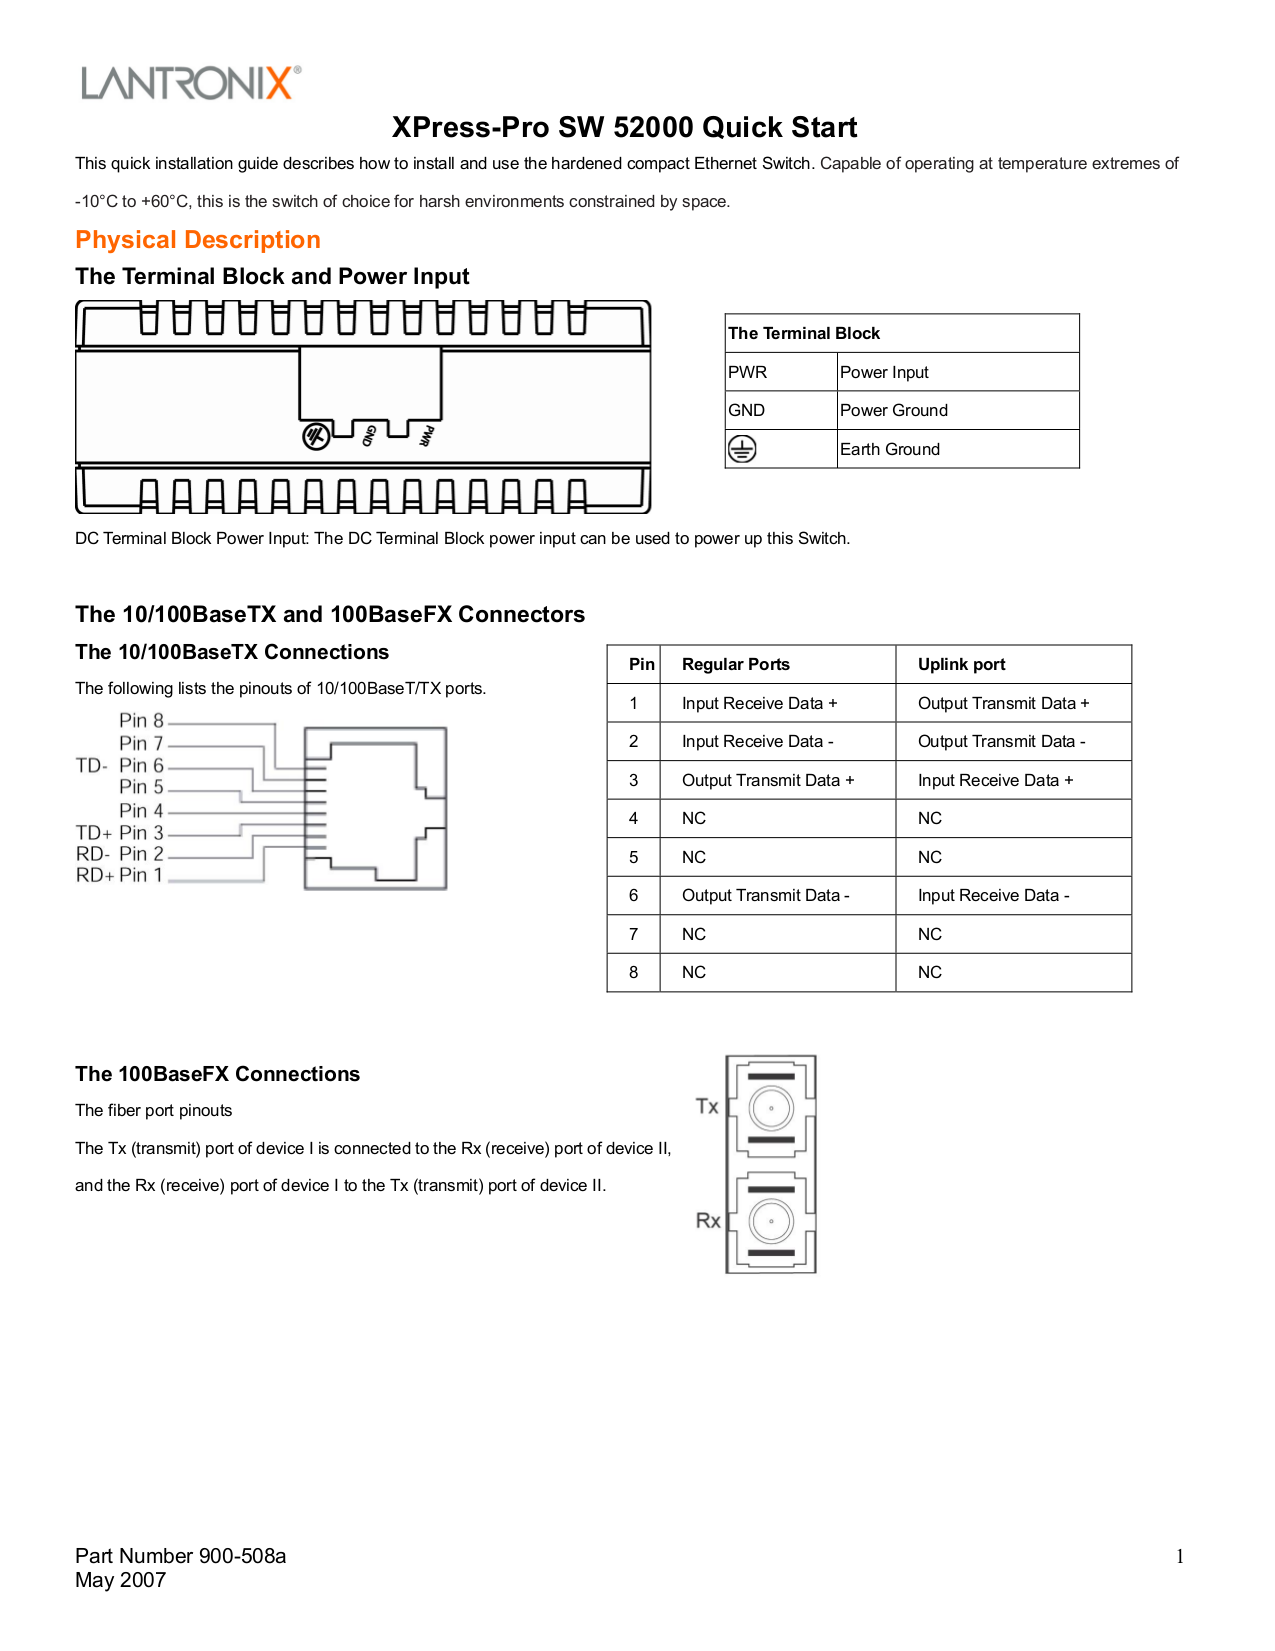 pdf for Lantronix Switch Xpress-Pro SW 52000 manual